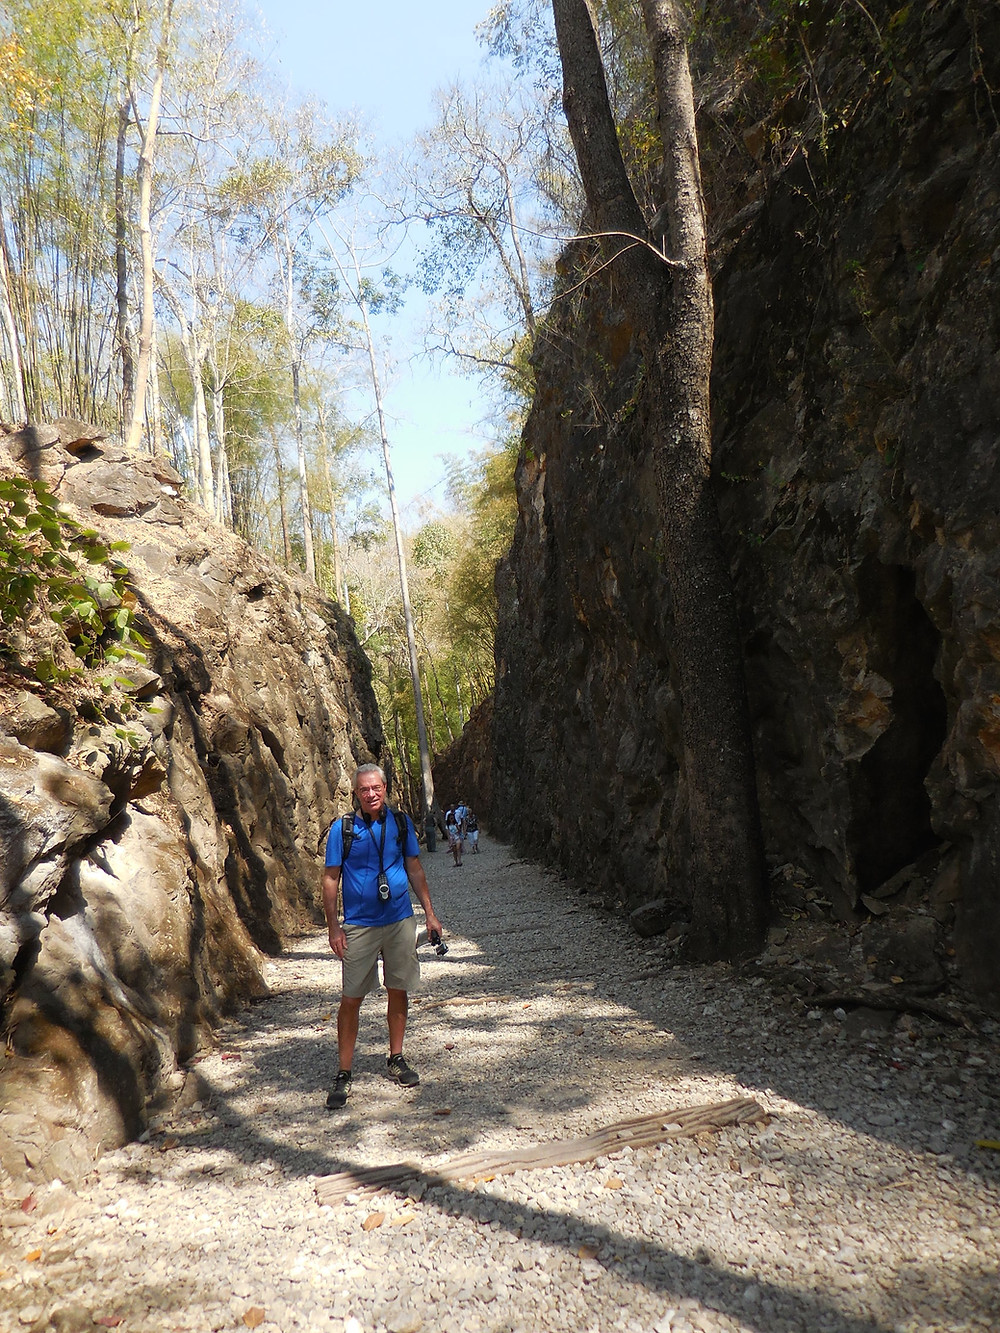 Inside Hellfire Pass. Notice how high the rock wall is on the right side.